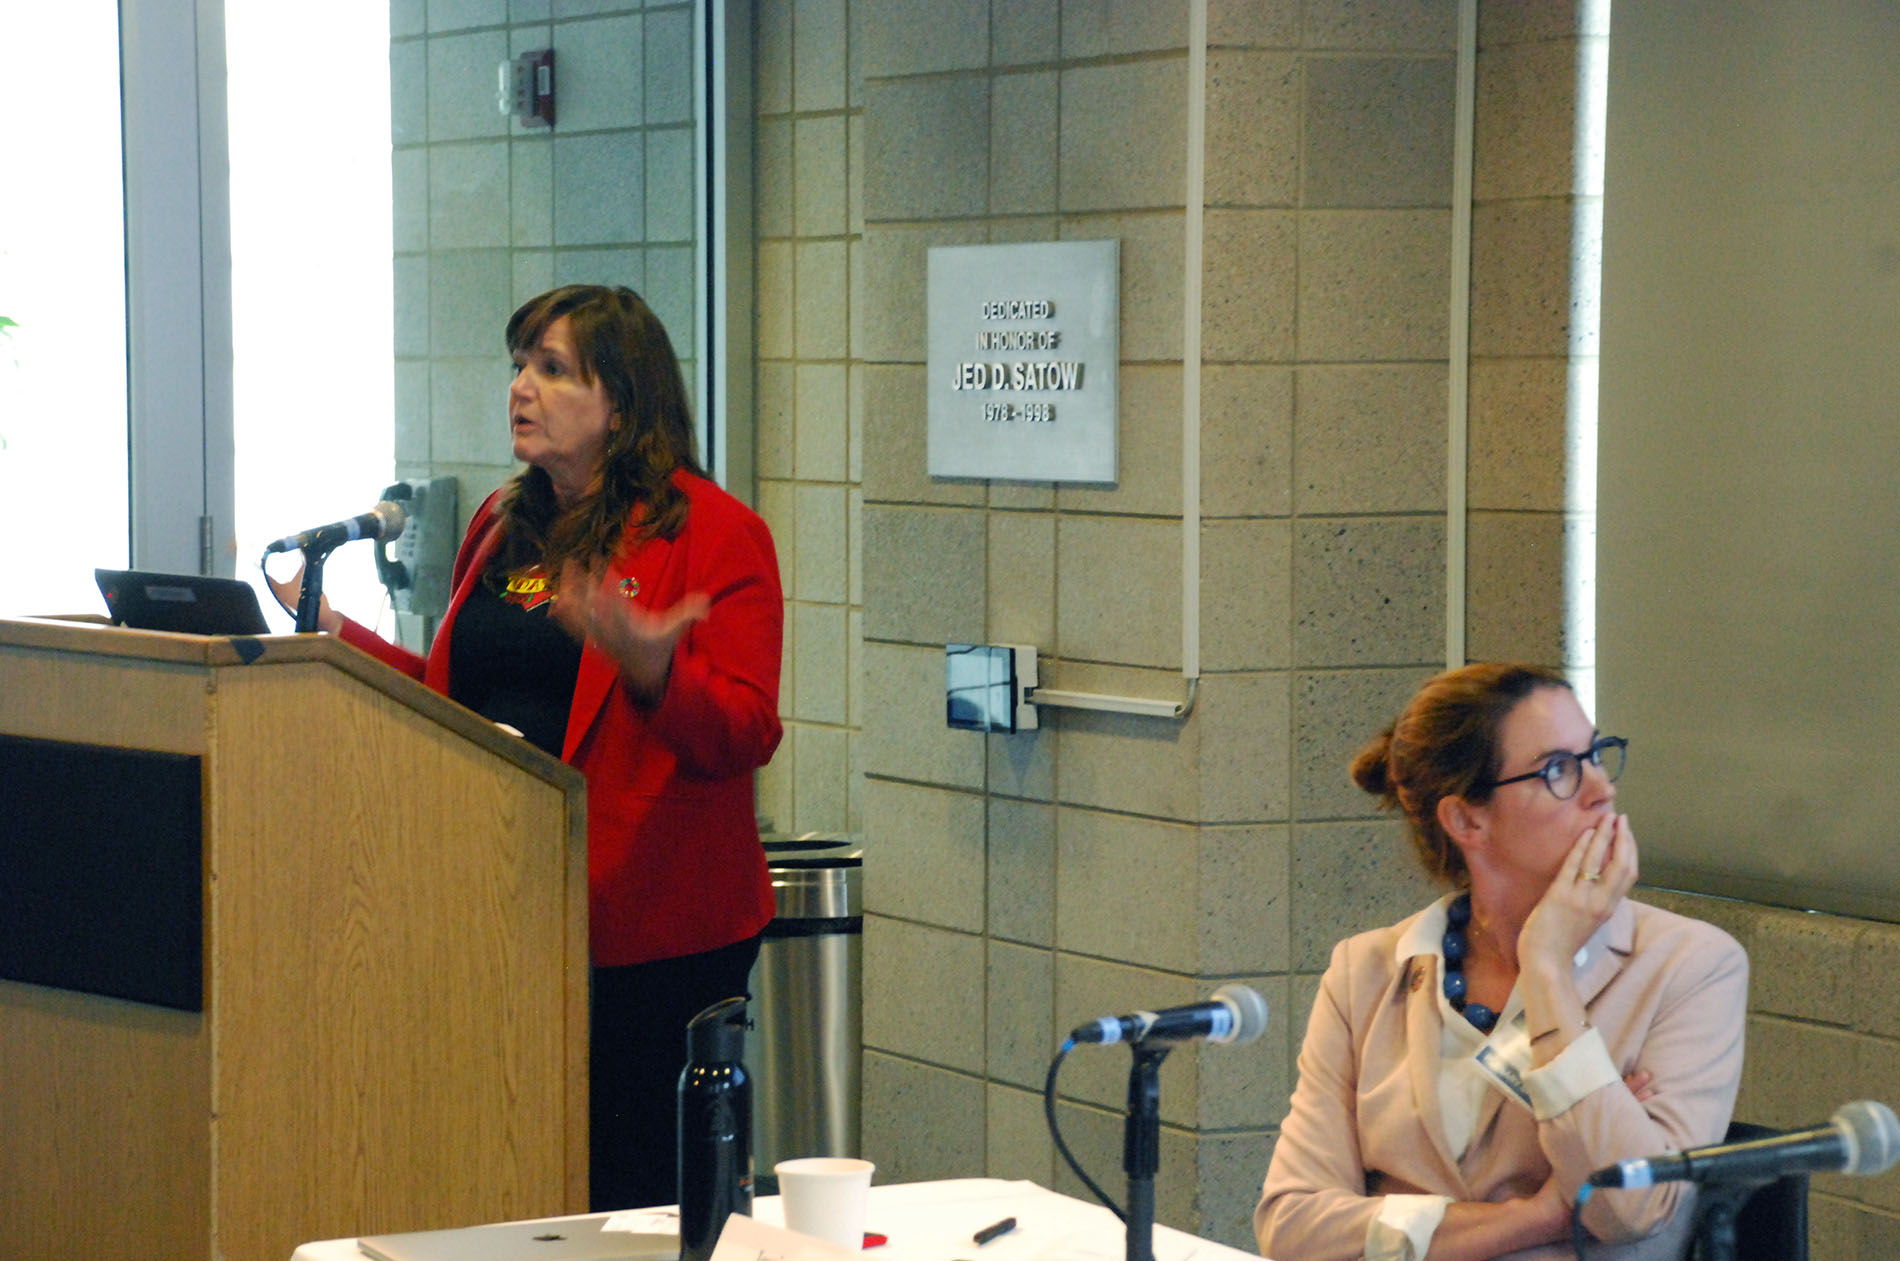 Jeanne Holm of the City of Los Angeles details the city's work to align existing sustainability plans with the SDG indicators. Source: Micha Dugan for SDSN